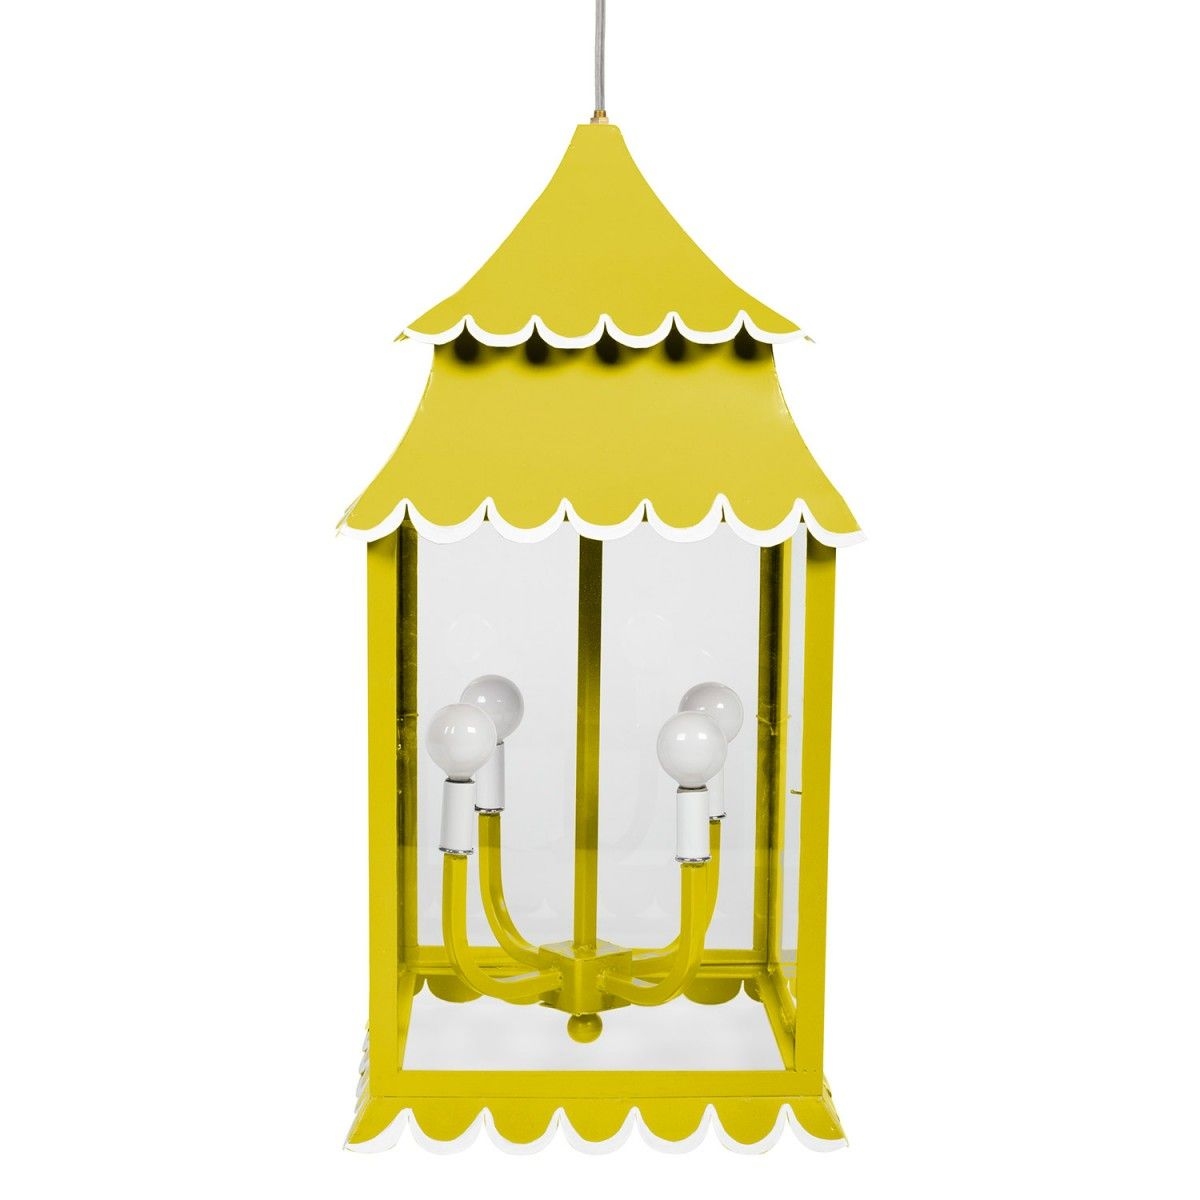 The Girly Hanging Lantern is perfect for an entryway or powder room! #straydogdesigns